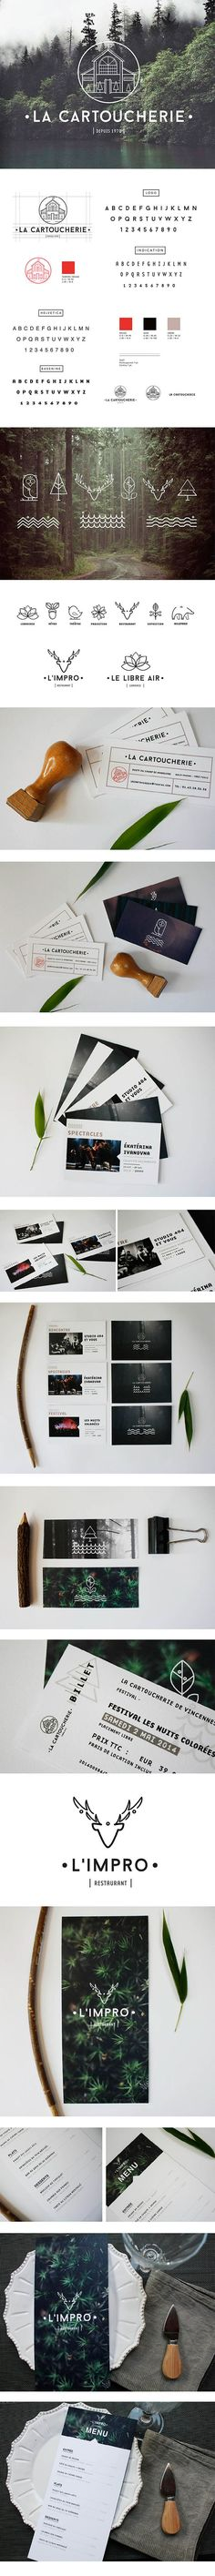 Theater : La Cartoucherie by Sacha Grellard, via Behance